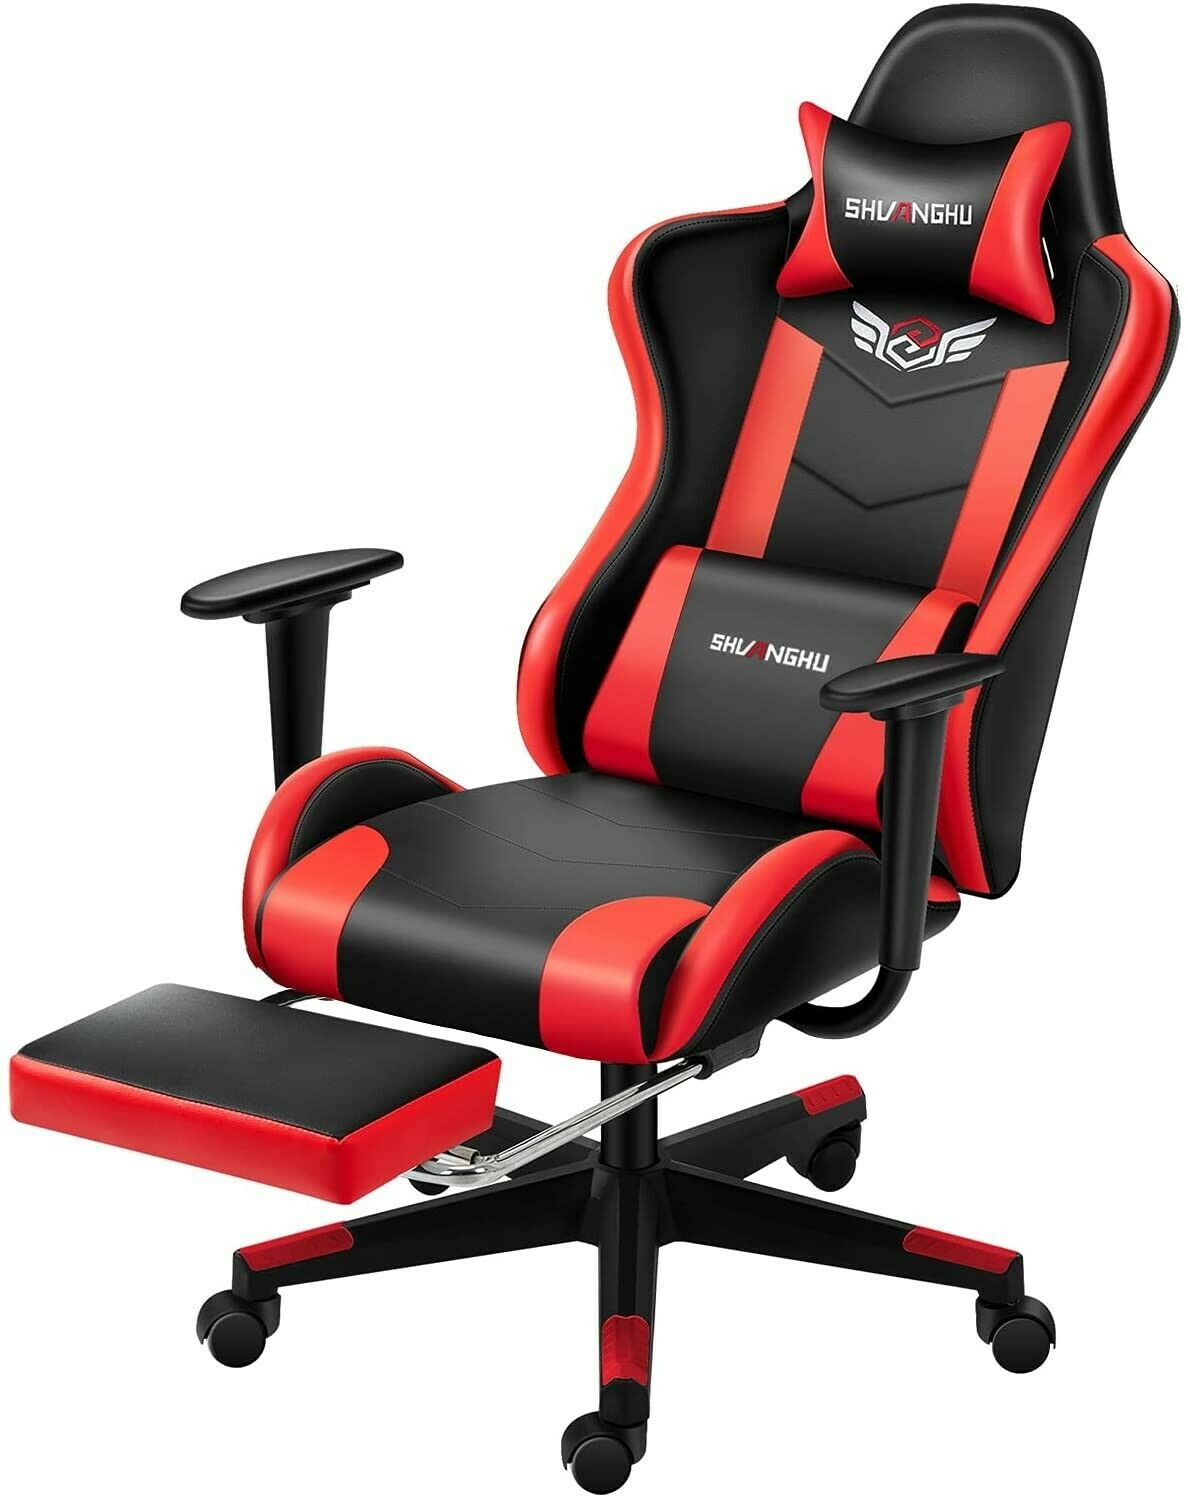 Gaming Chair Office Chair Ergonomic Computer Chair with Reclining Chair [A0]